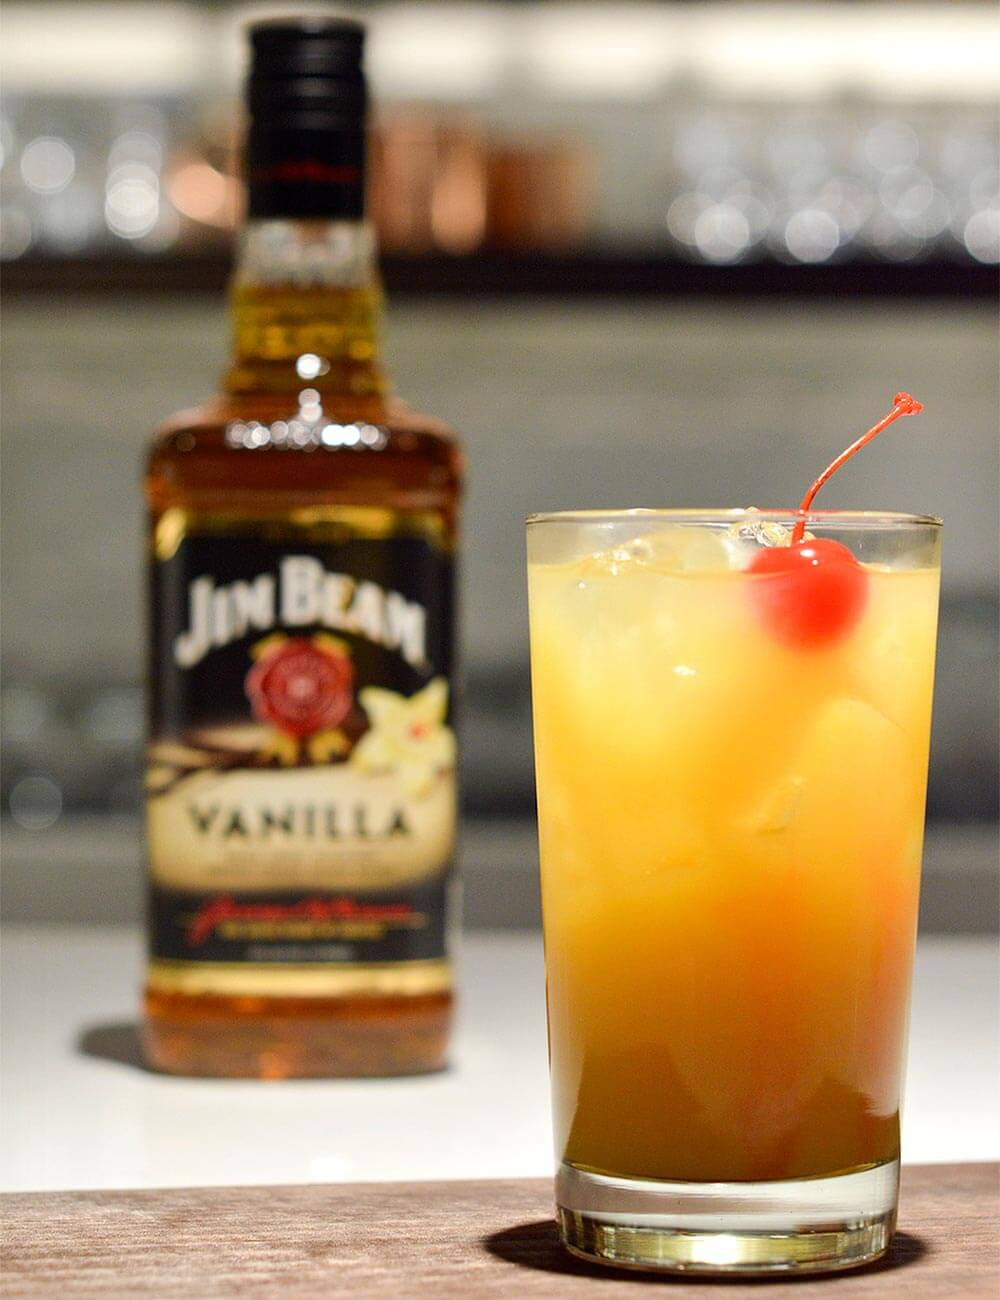 Jim Beam Launches New Jim Beam Vanilla